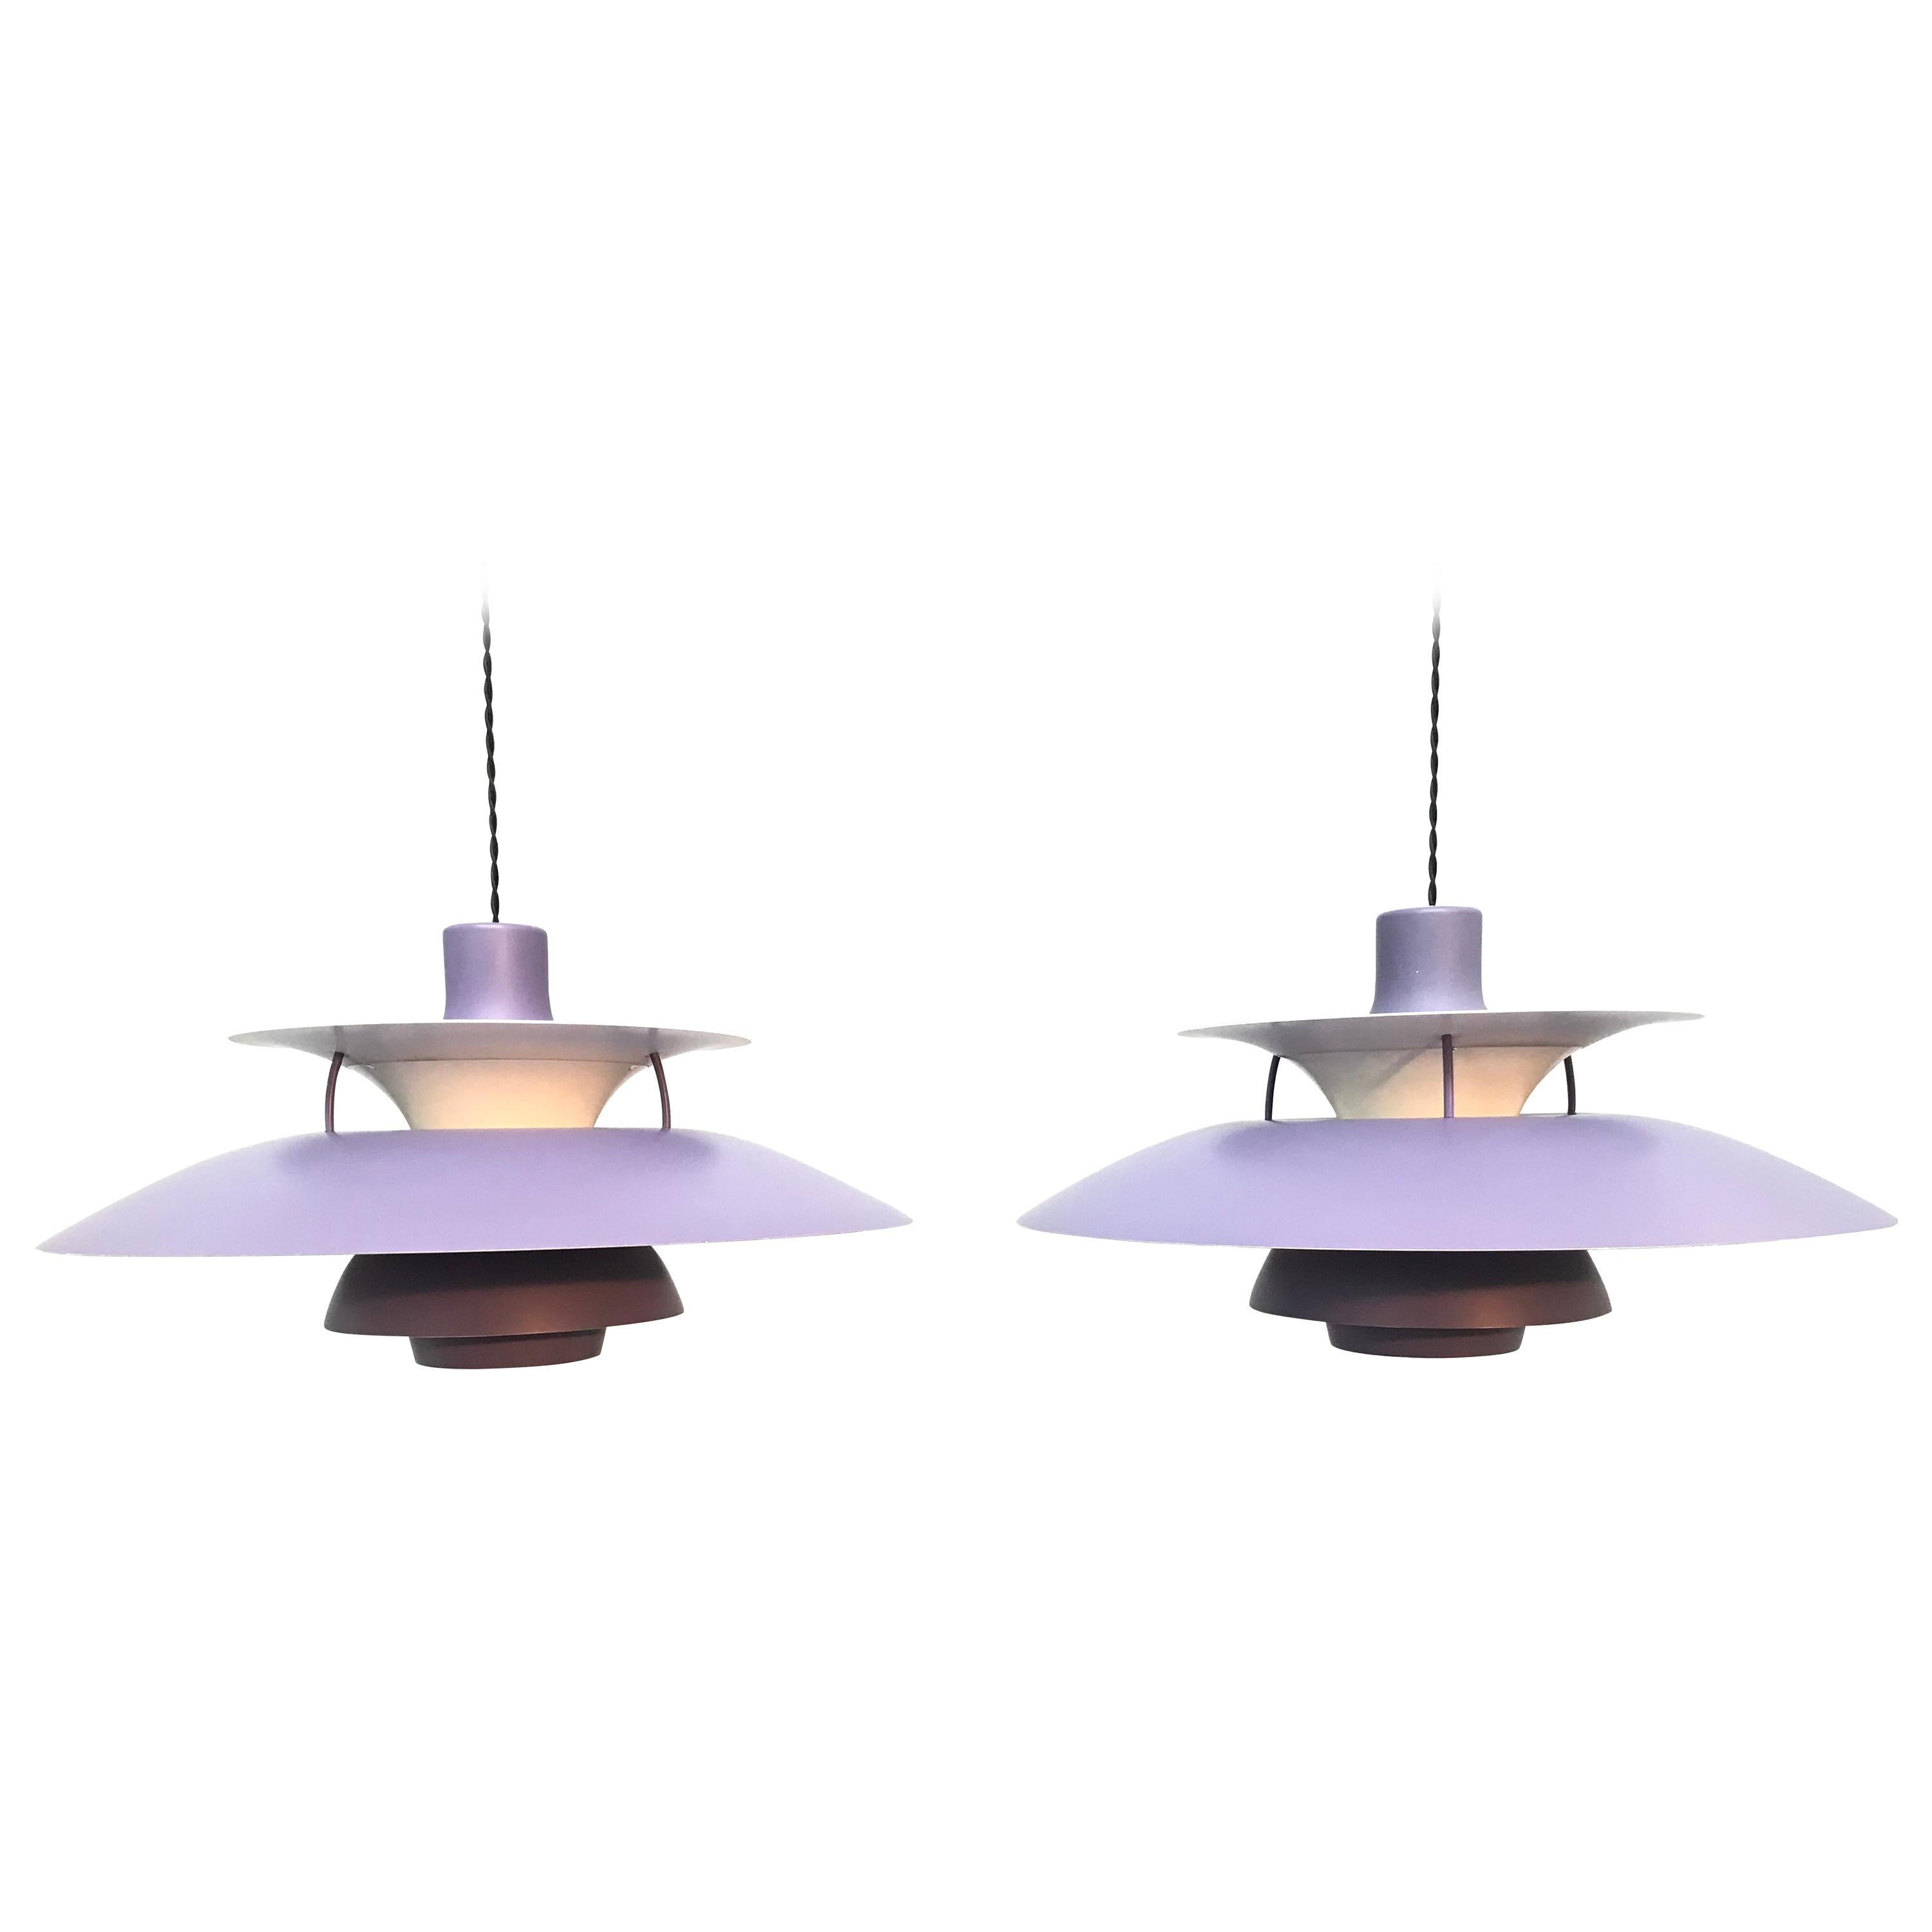 Iconic Vintage Poul Henningsen PH 5 Chandelier Pendant Lamps from the 1960s